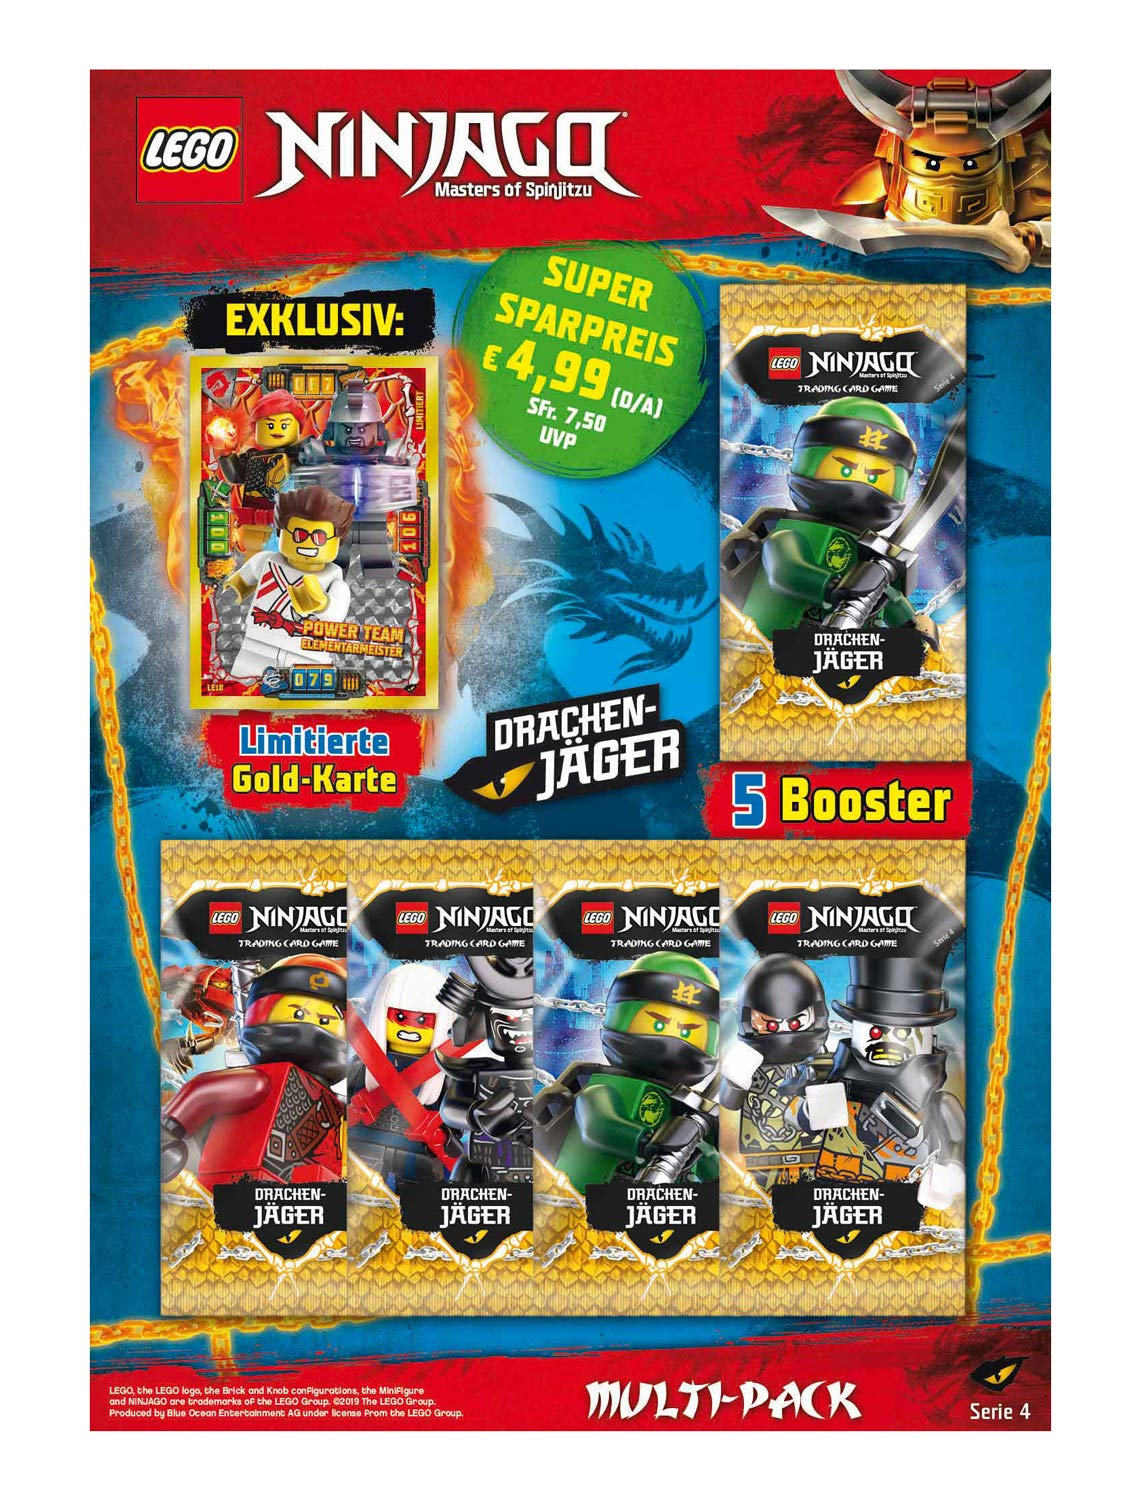 Top Media 180323 Lego Ninjago Series IV Multipack 5 Boosters and Limited Gold Card Multi-Coloured